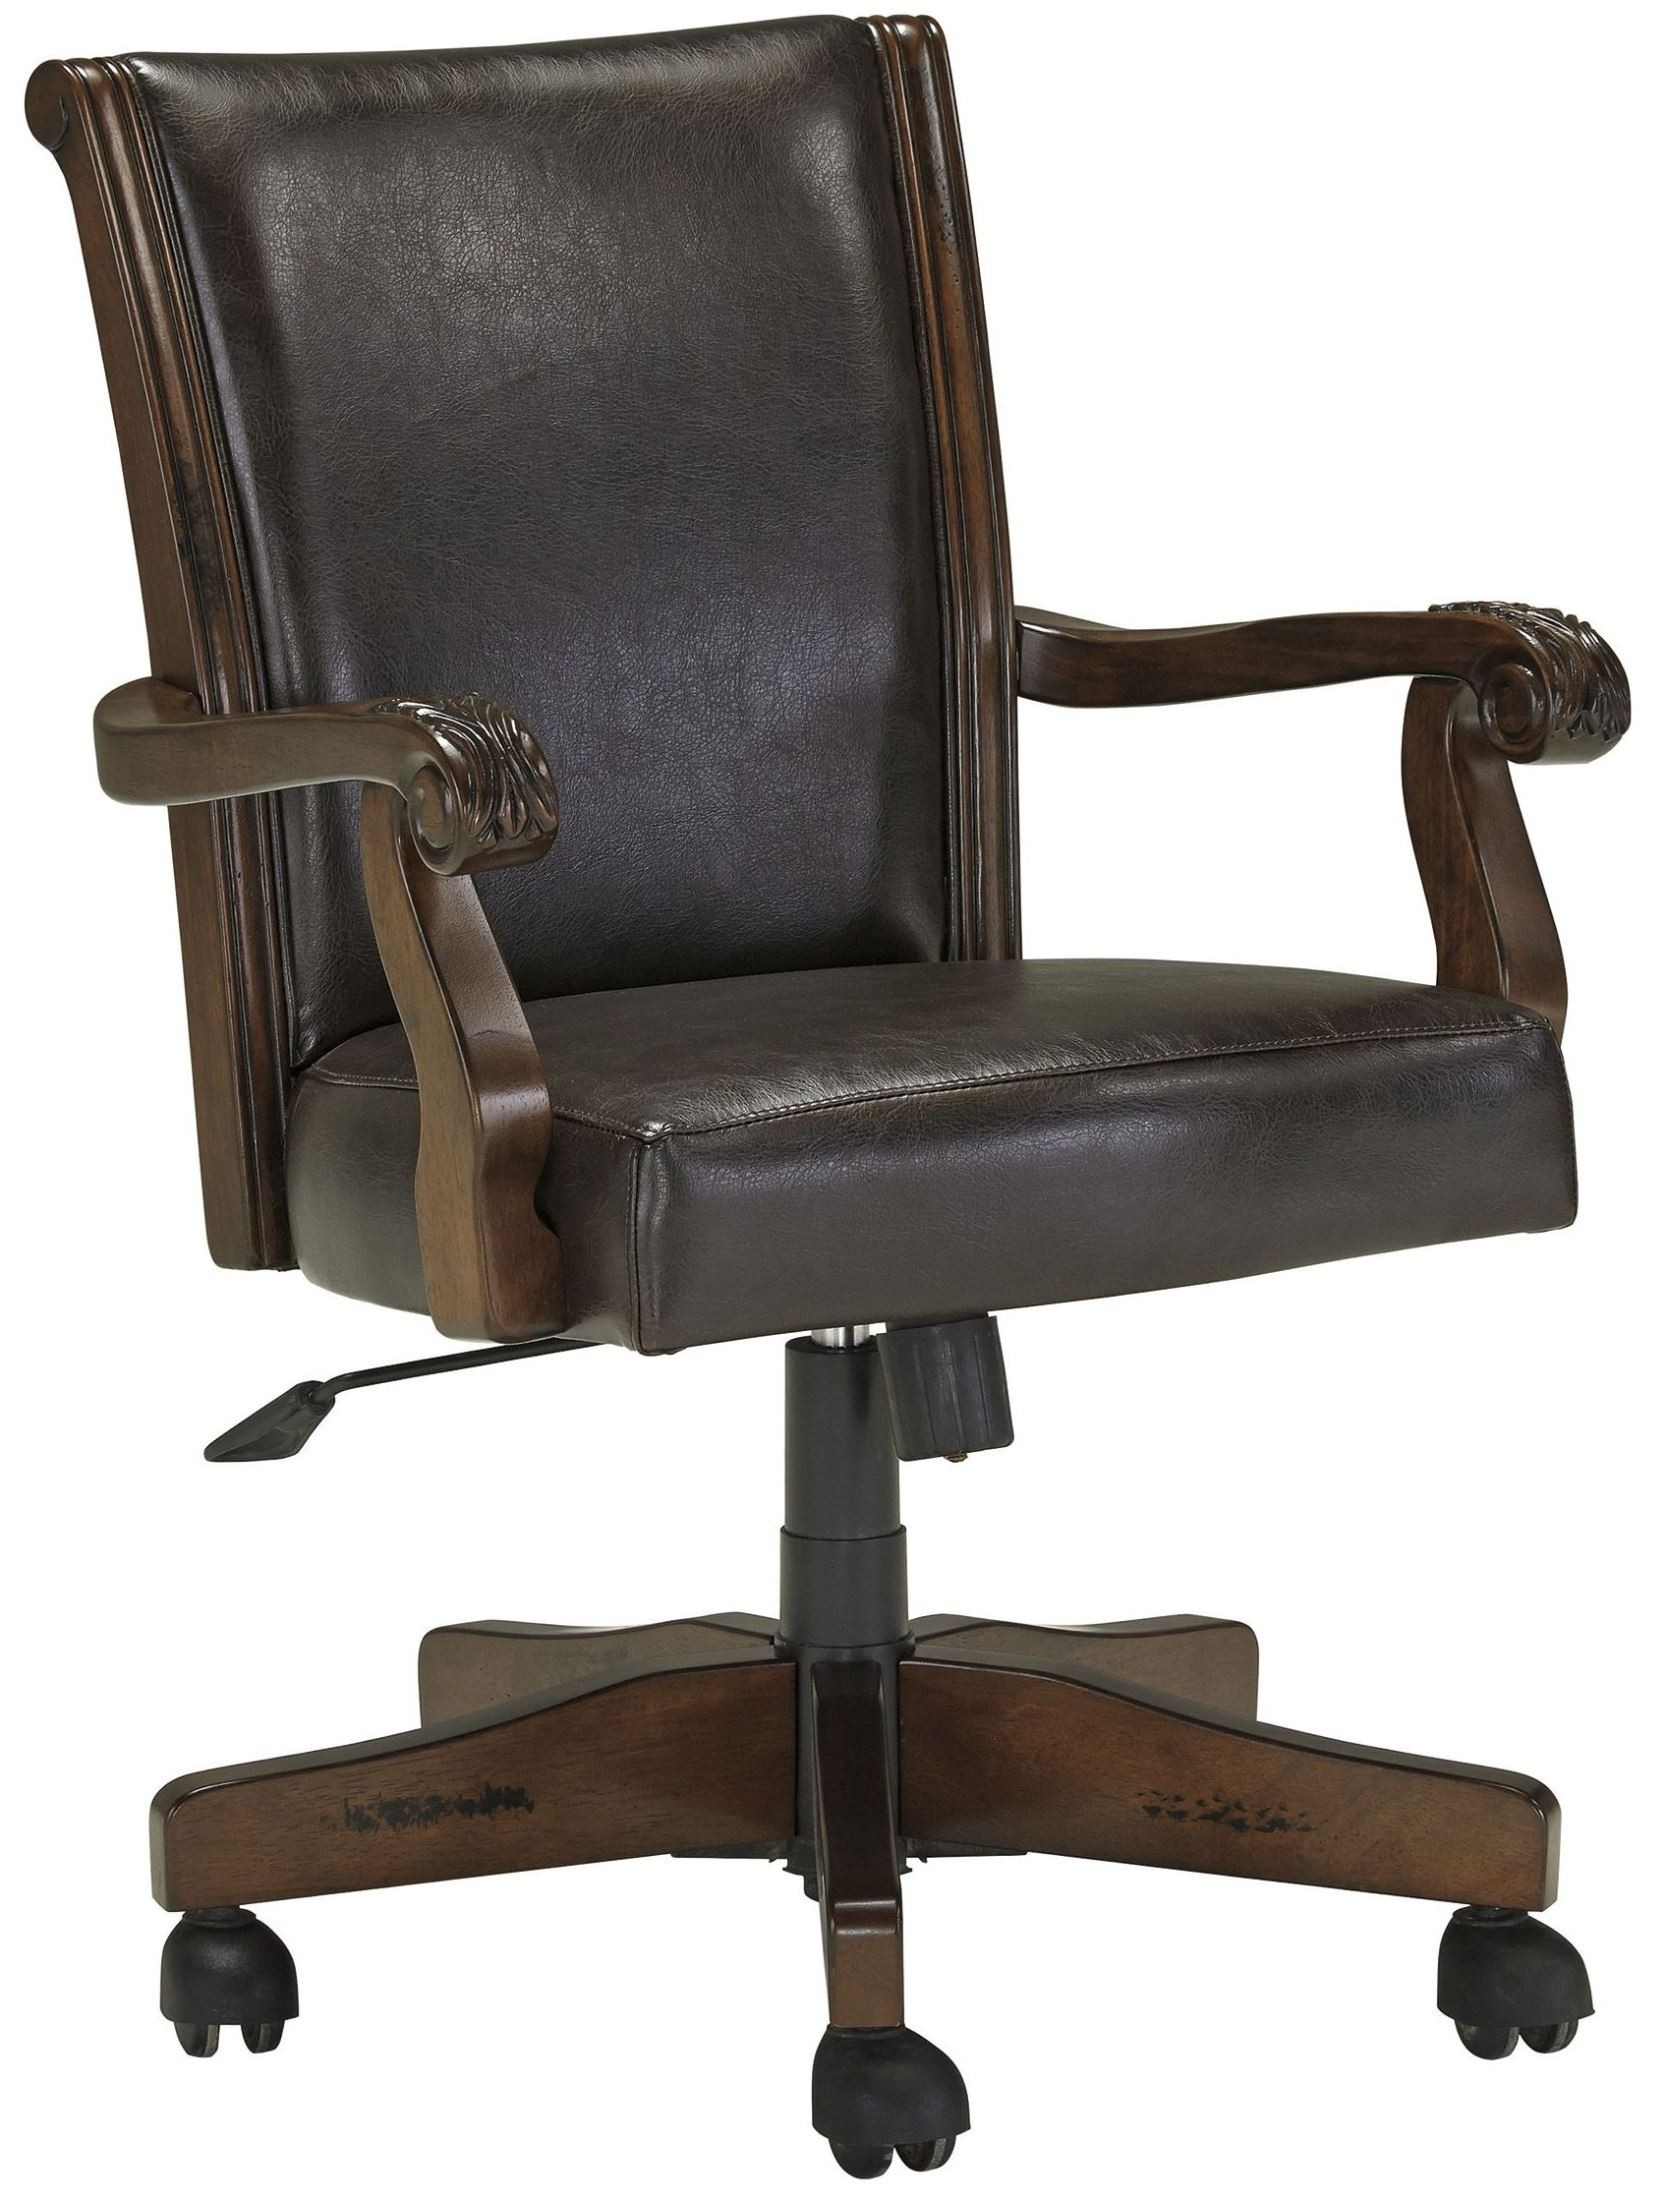 Merveilleux Computer Chairs Wood Grain Finish Home Office Chair Wooden Chairs